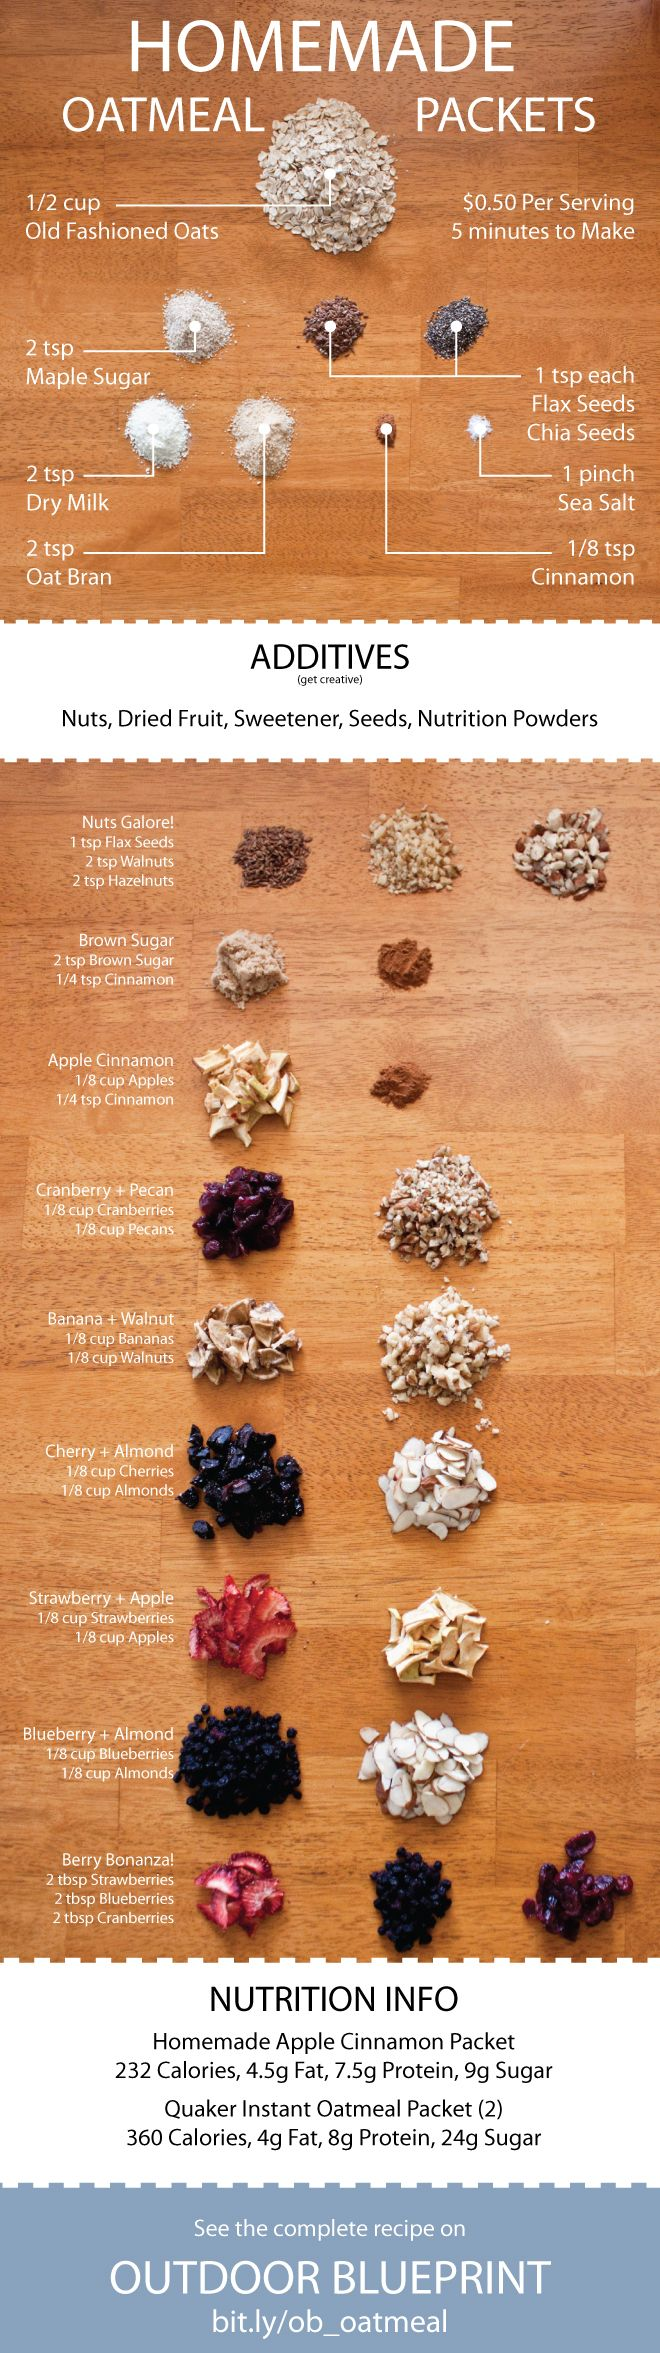 Upgrade your backcountry #breakfast with these homemade oatmeal packets - www.outdoorblueprint.com/read/homemade-oatmeal-packets-recipe/